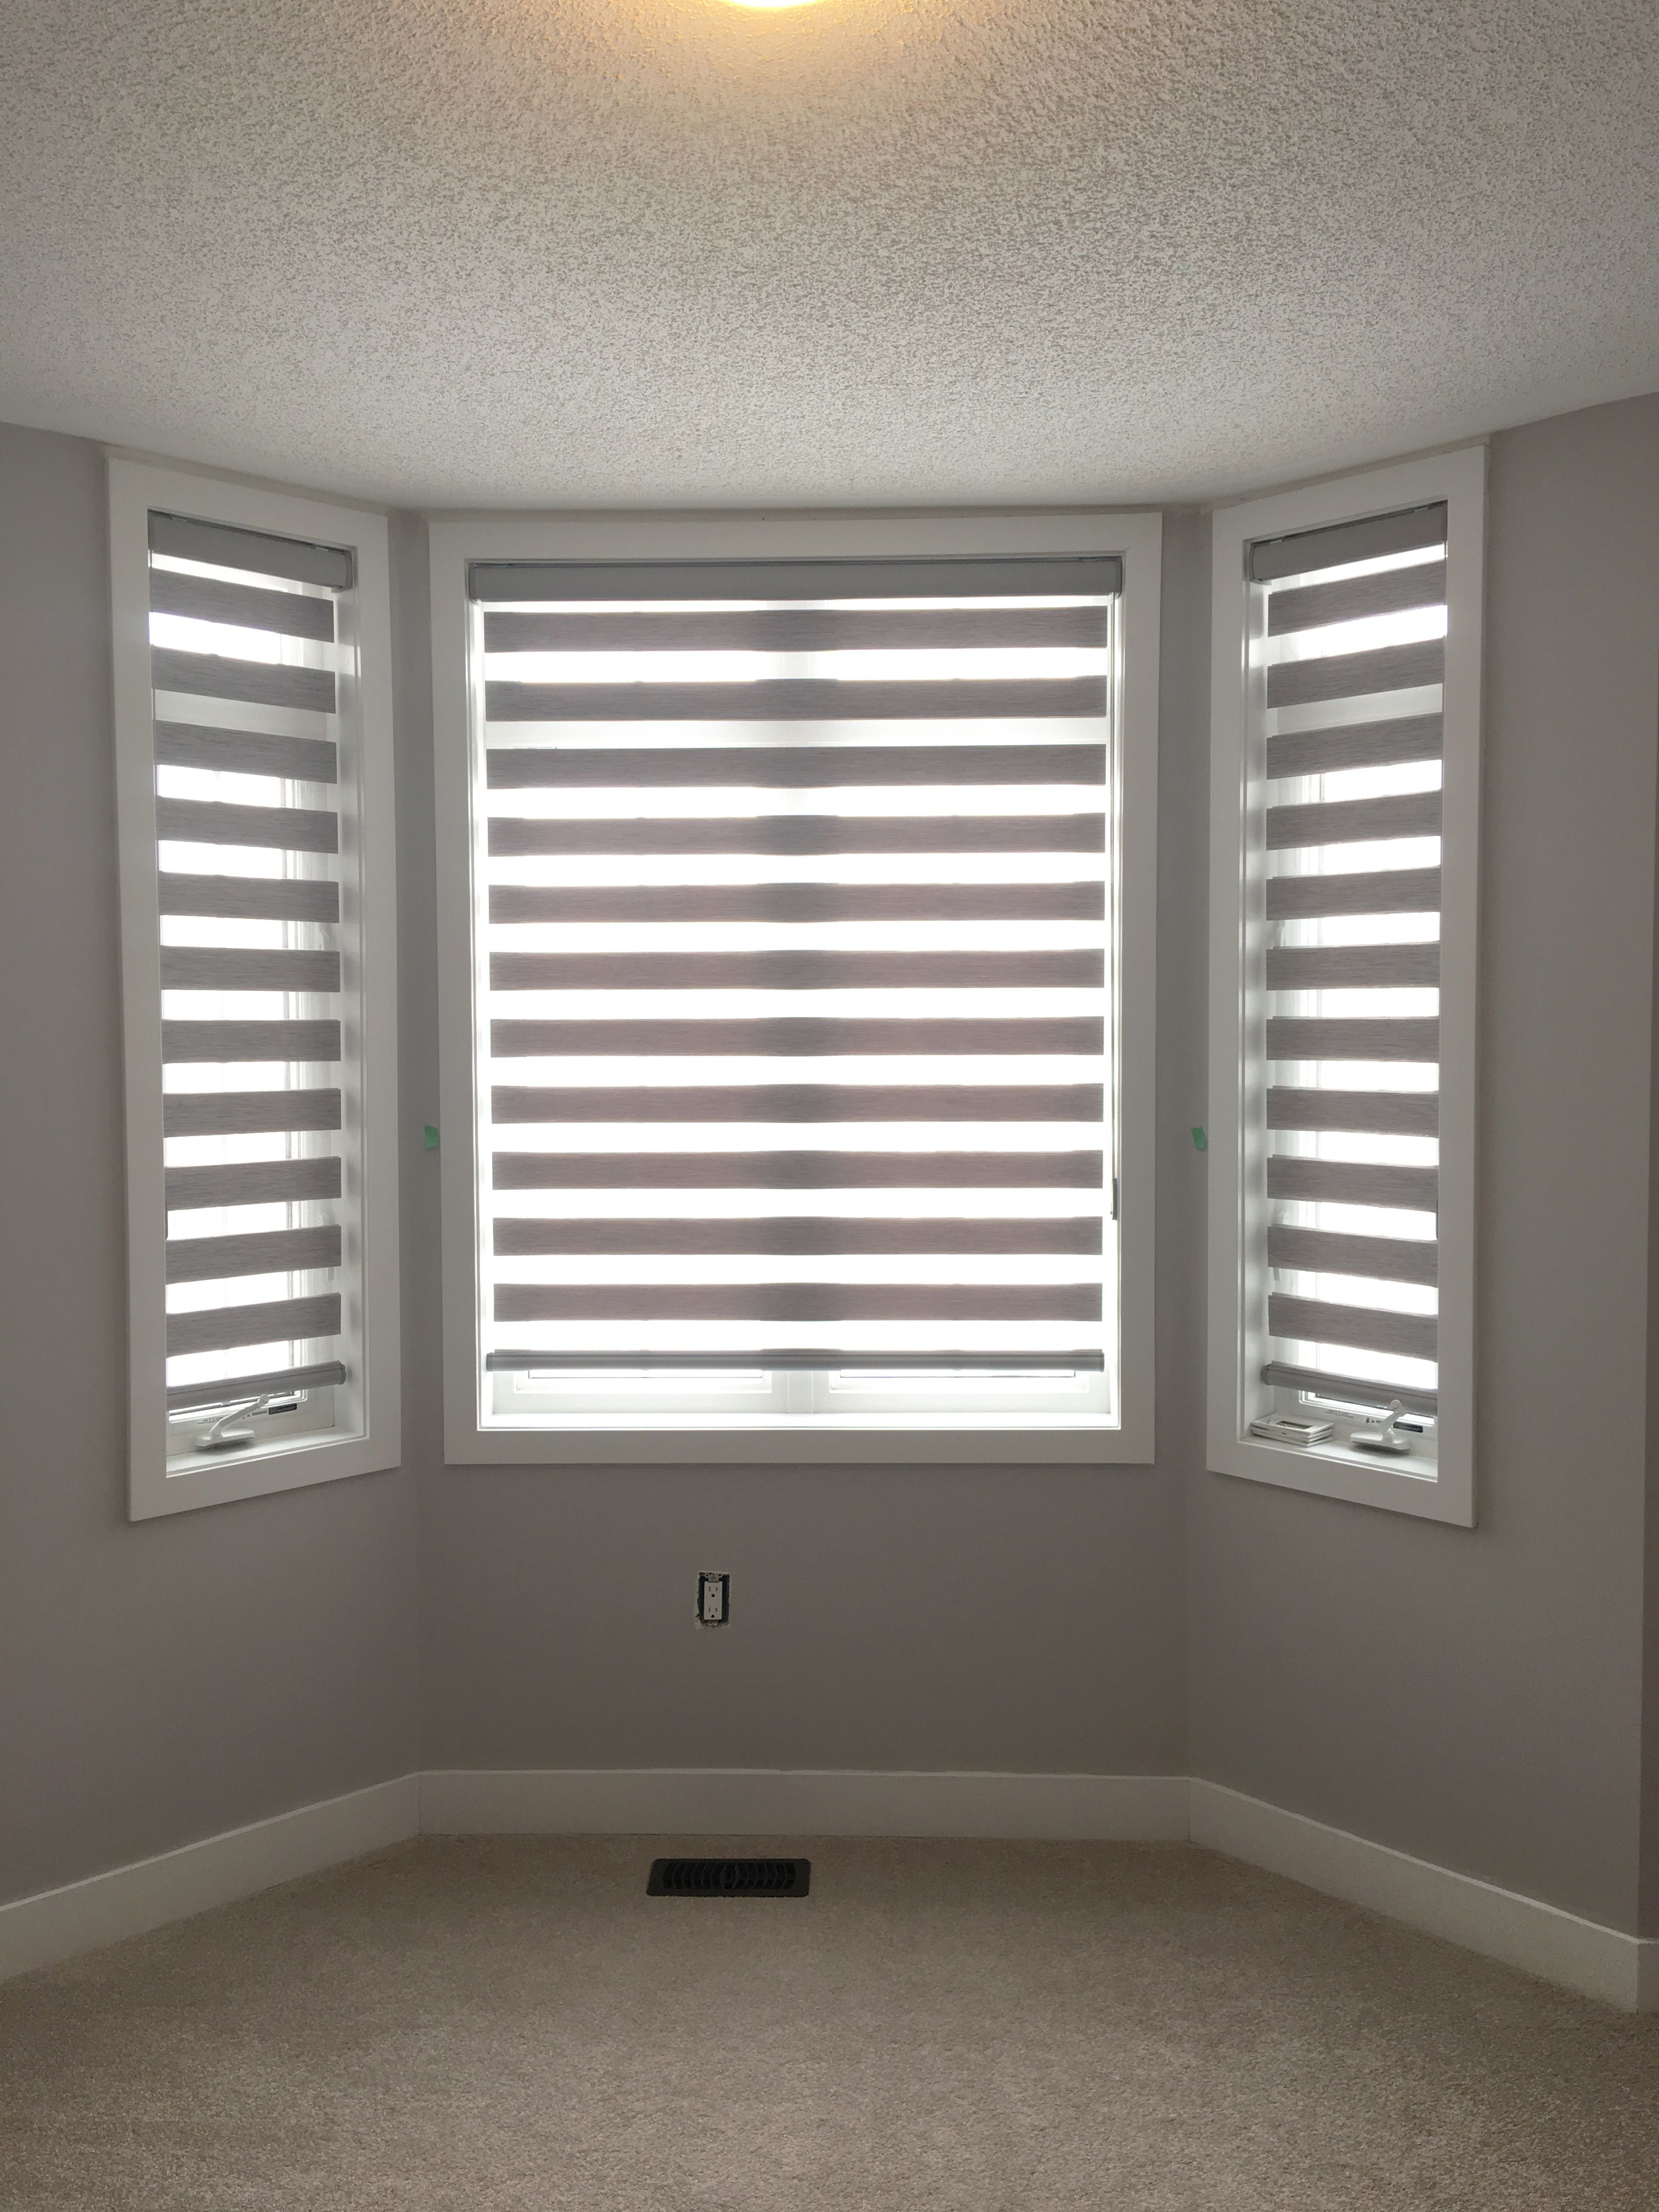 g blinds go your van nationwide covering to related mini specialist paramus windo locations window